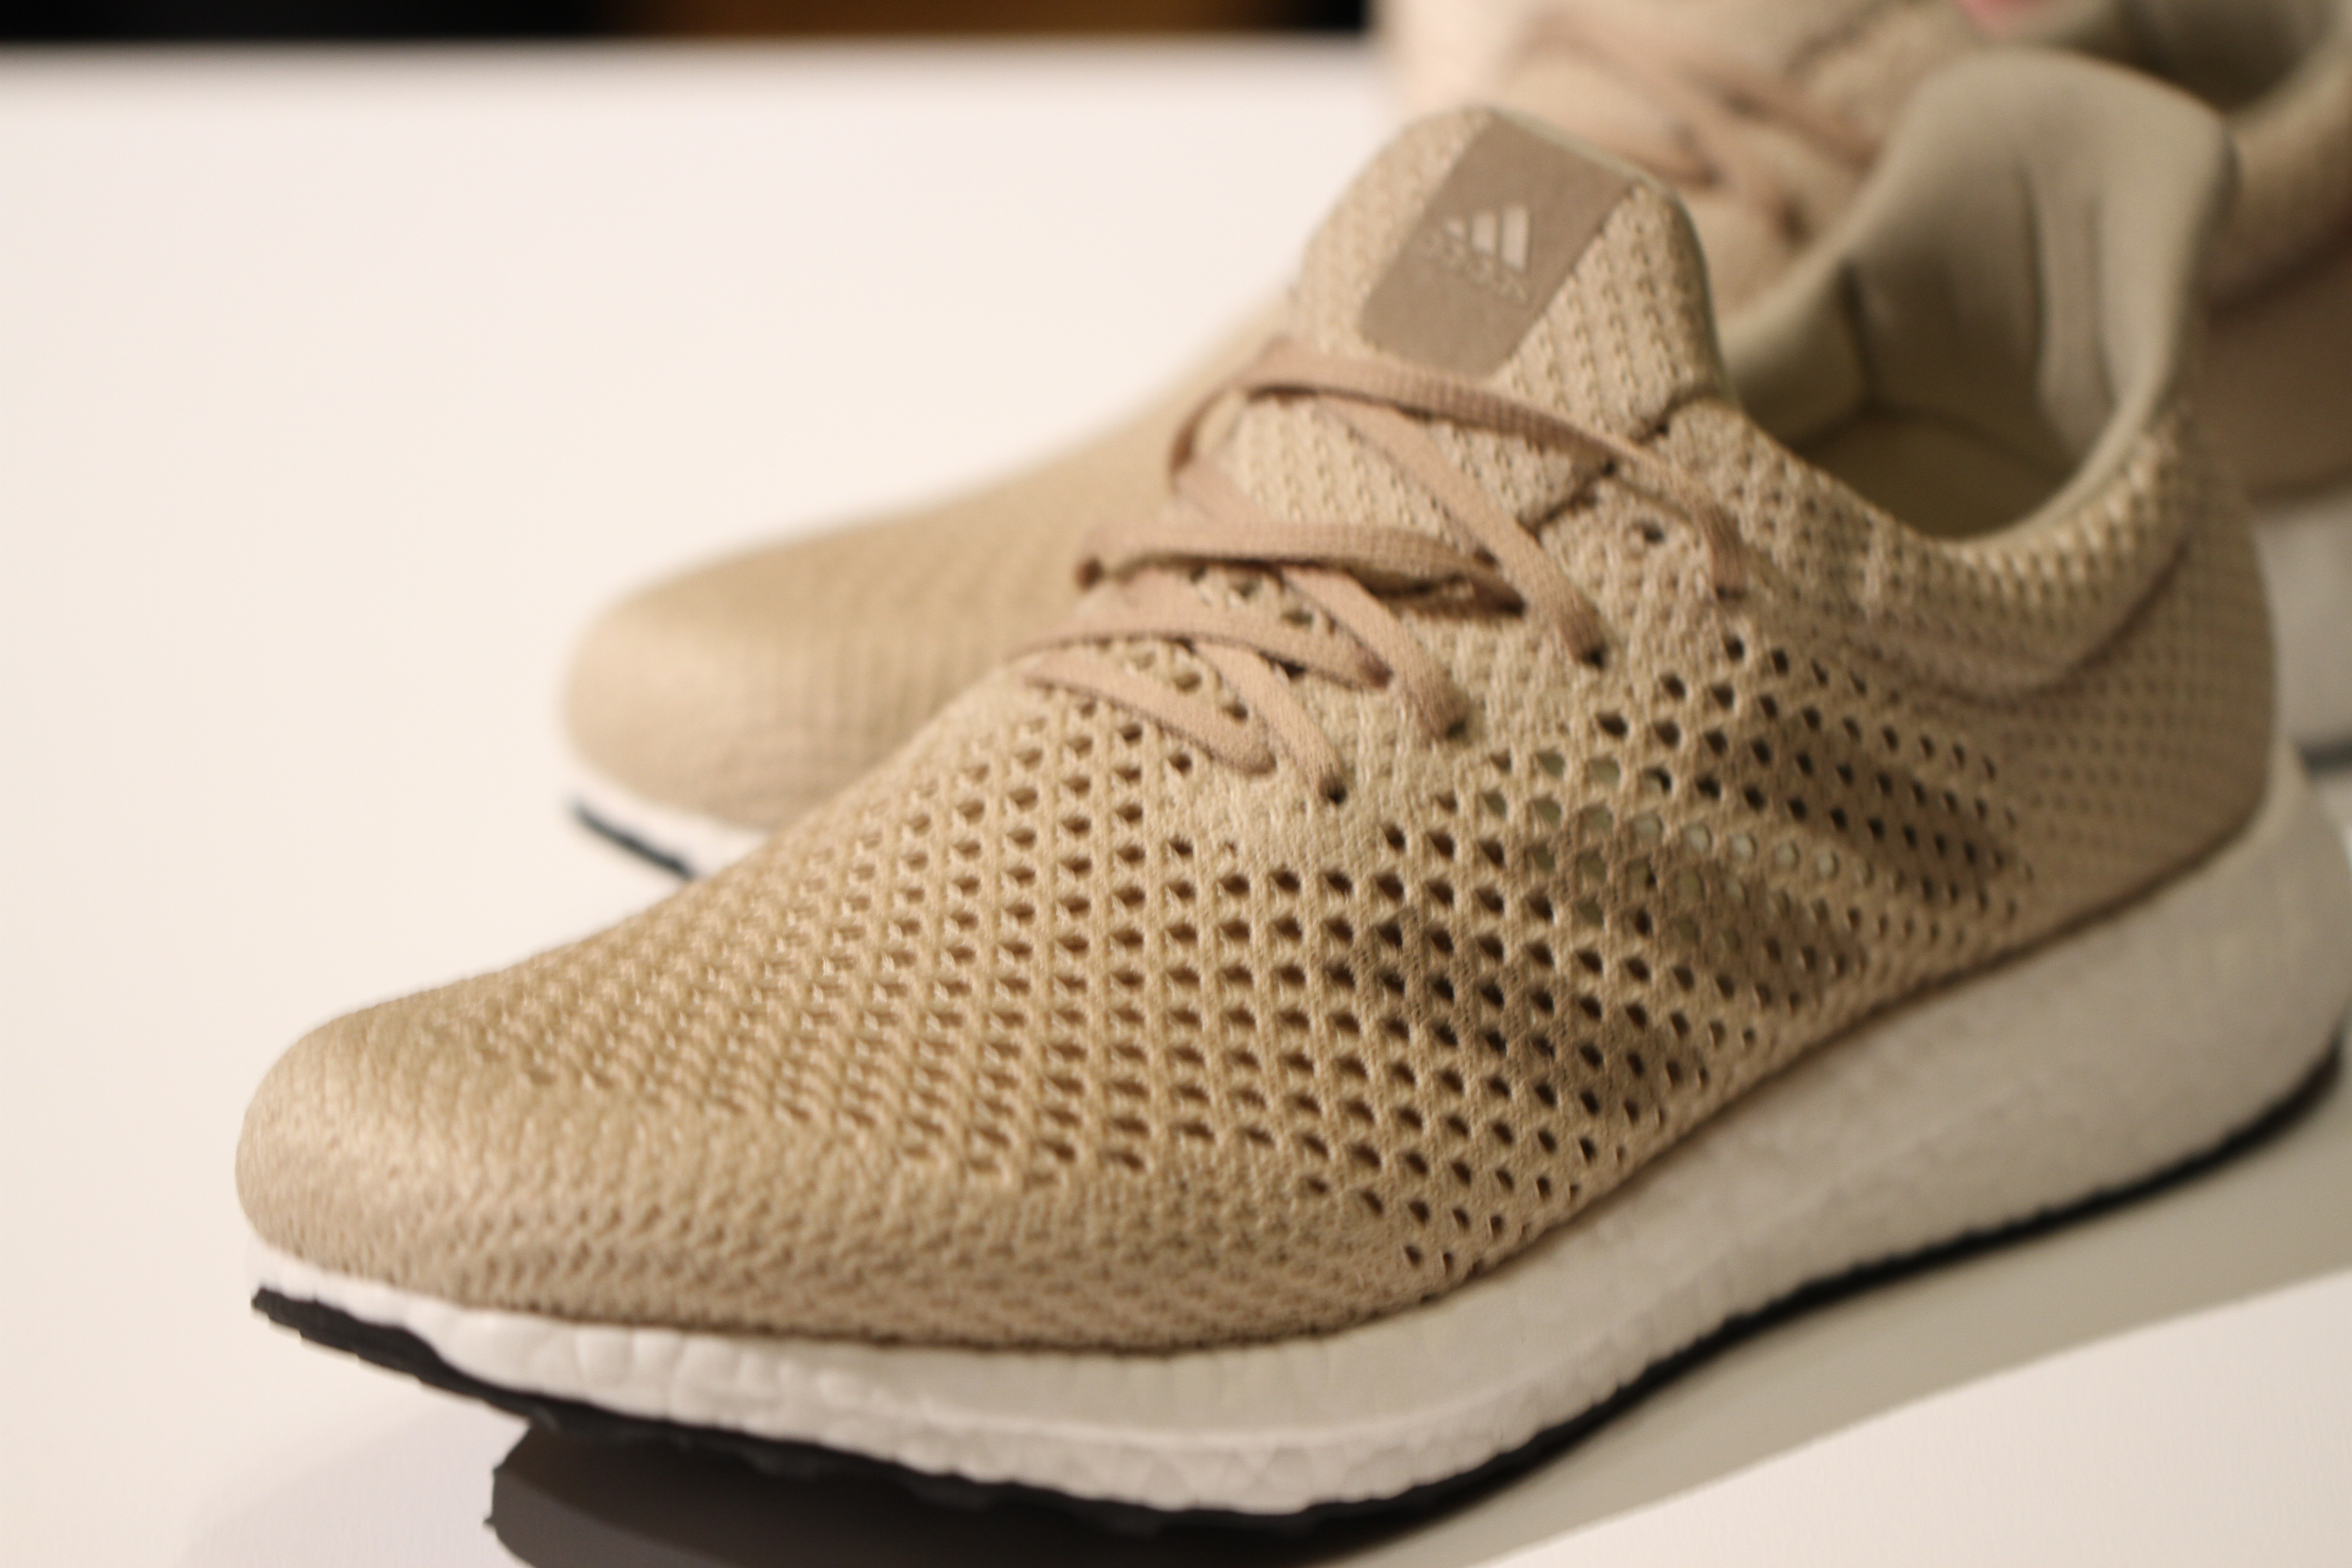 668e32ec6aade These Adidas shoes are biodegradable